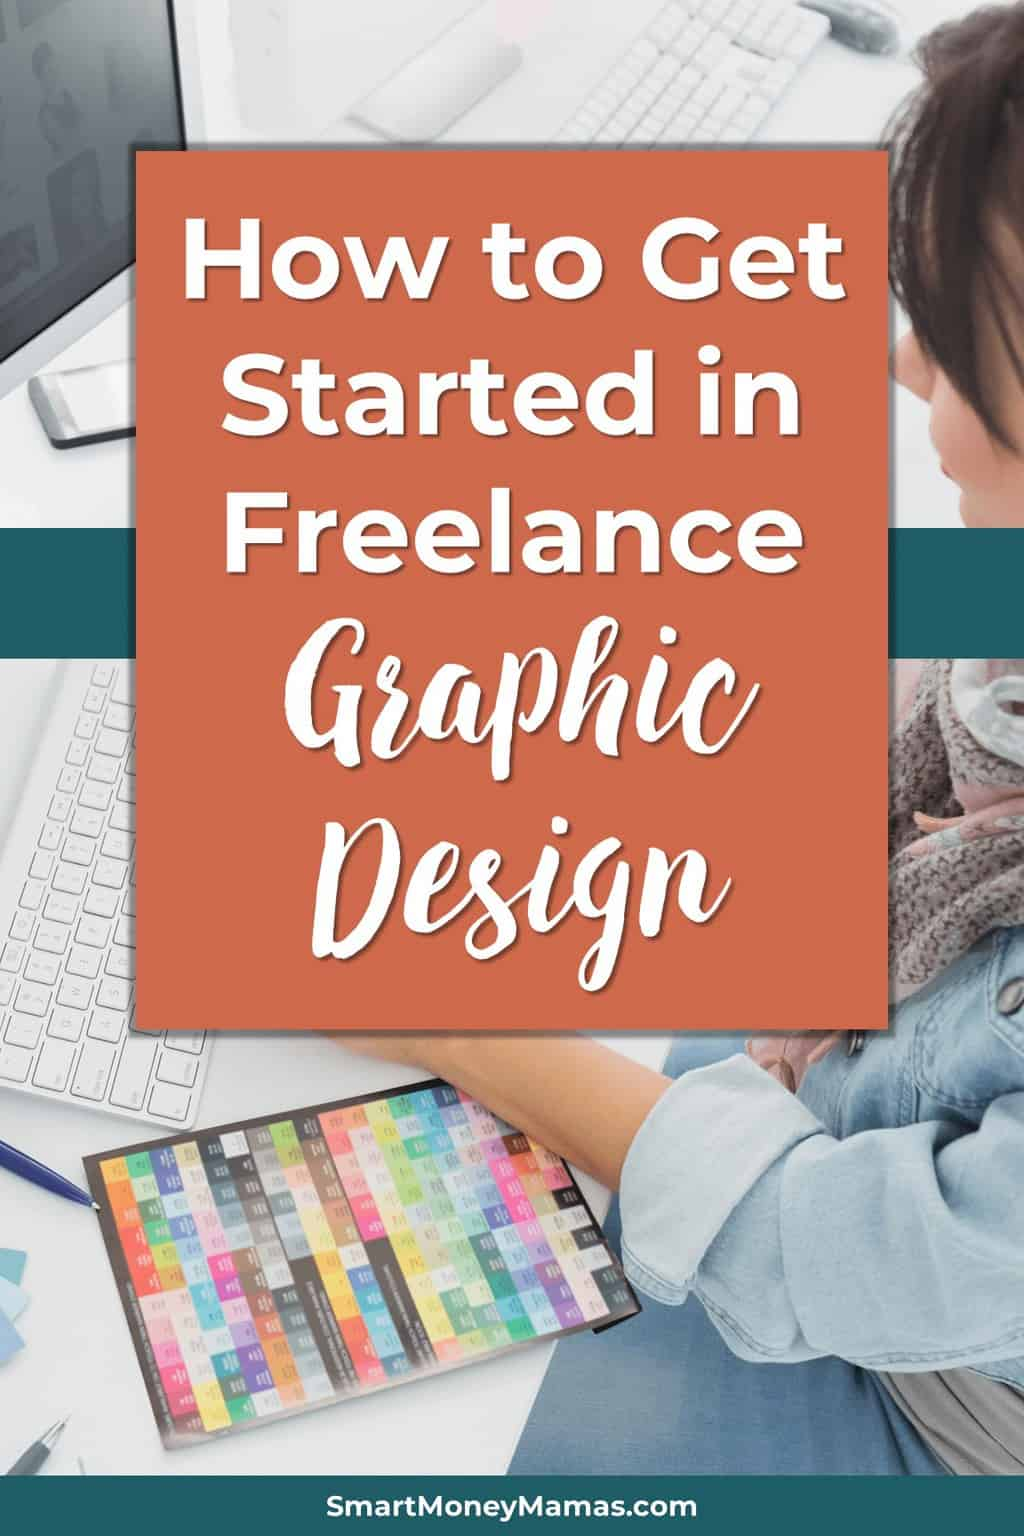 I\'ve really wanted to make money doing freelance graphic design but didn\'t think I could do it without a degree! Now I\'m excited to get started with my own little side business. #graphicdesign #design #freelancing #freelancelife #mompreneur #makemoney #smartmoneymamas